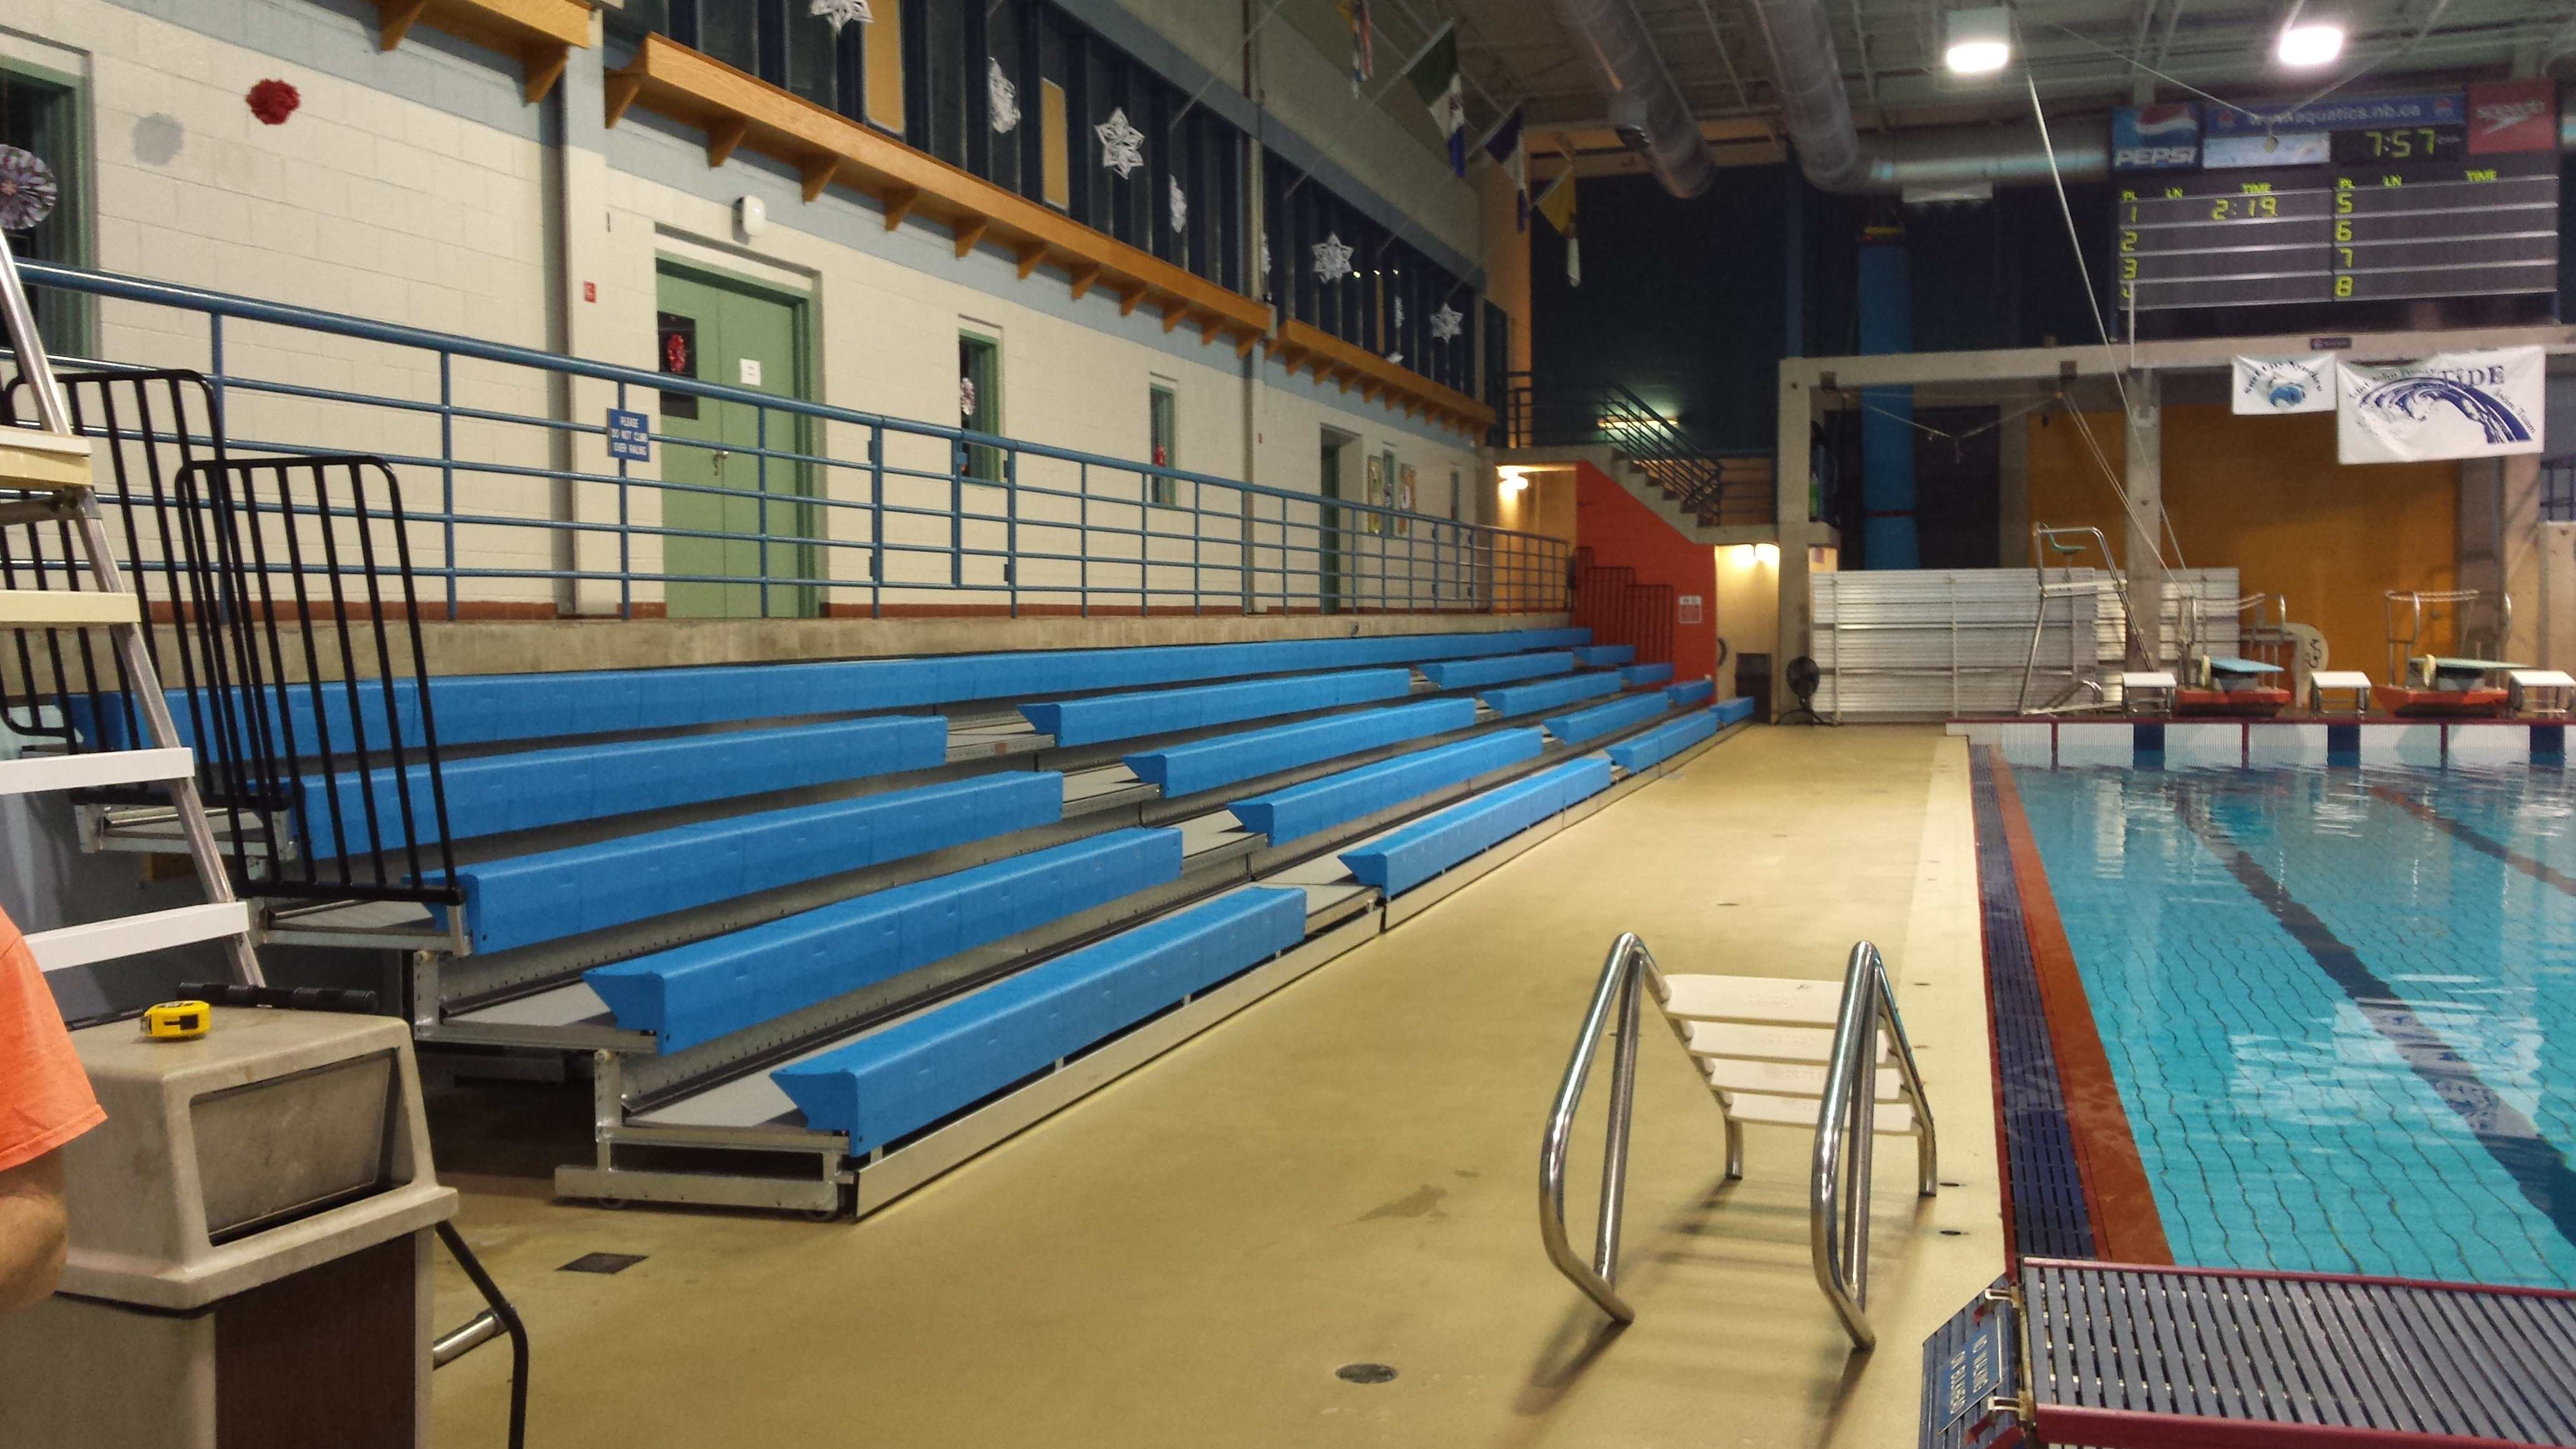 High Humidity Telescopic Pool Bleachers For The City Of